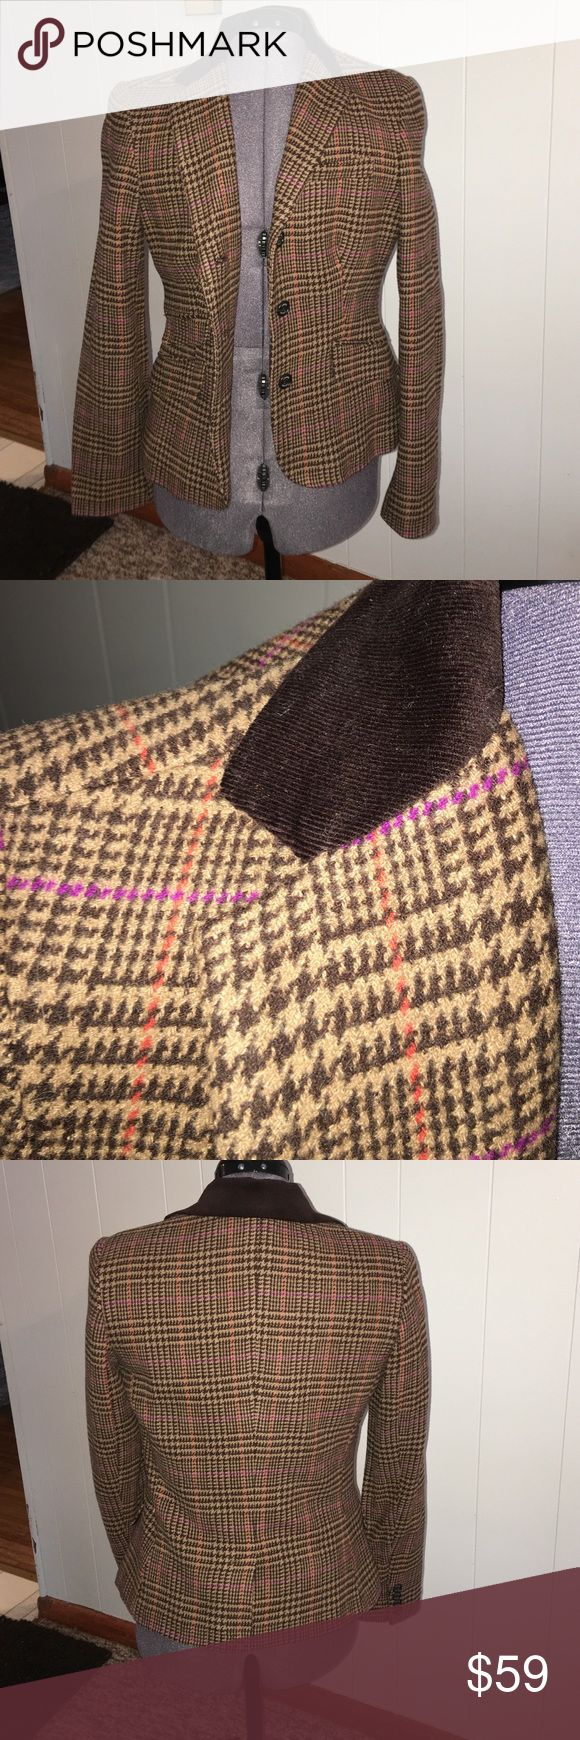 NWOT Chaps Brown Blazer Never worn blazer in brown houndstooth plaid print, with some orange and purple detailing. Has a corduroy collar to amp the old fashioned look. Still has the bottom sewn together on the back. No trades. Chaps Jackets & Coats Blazers